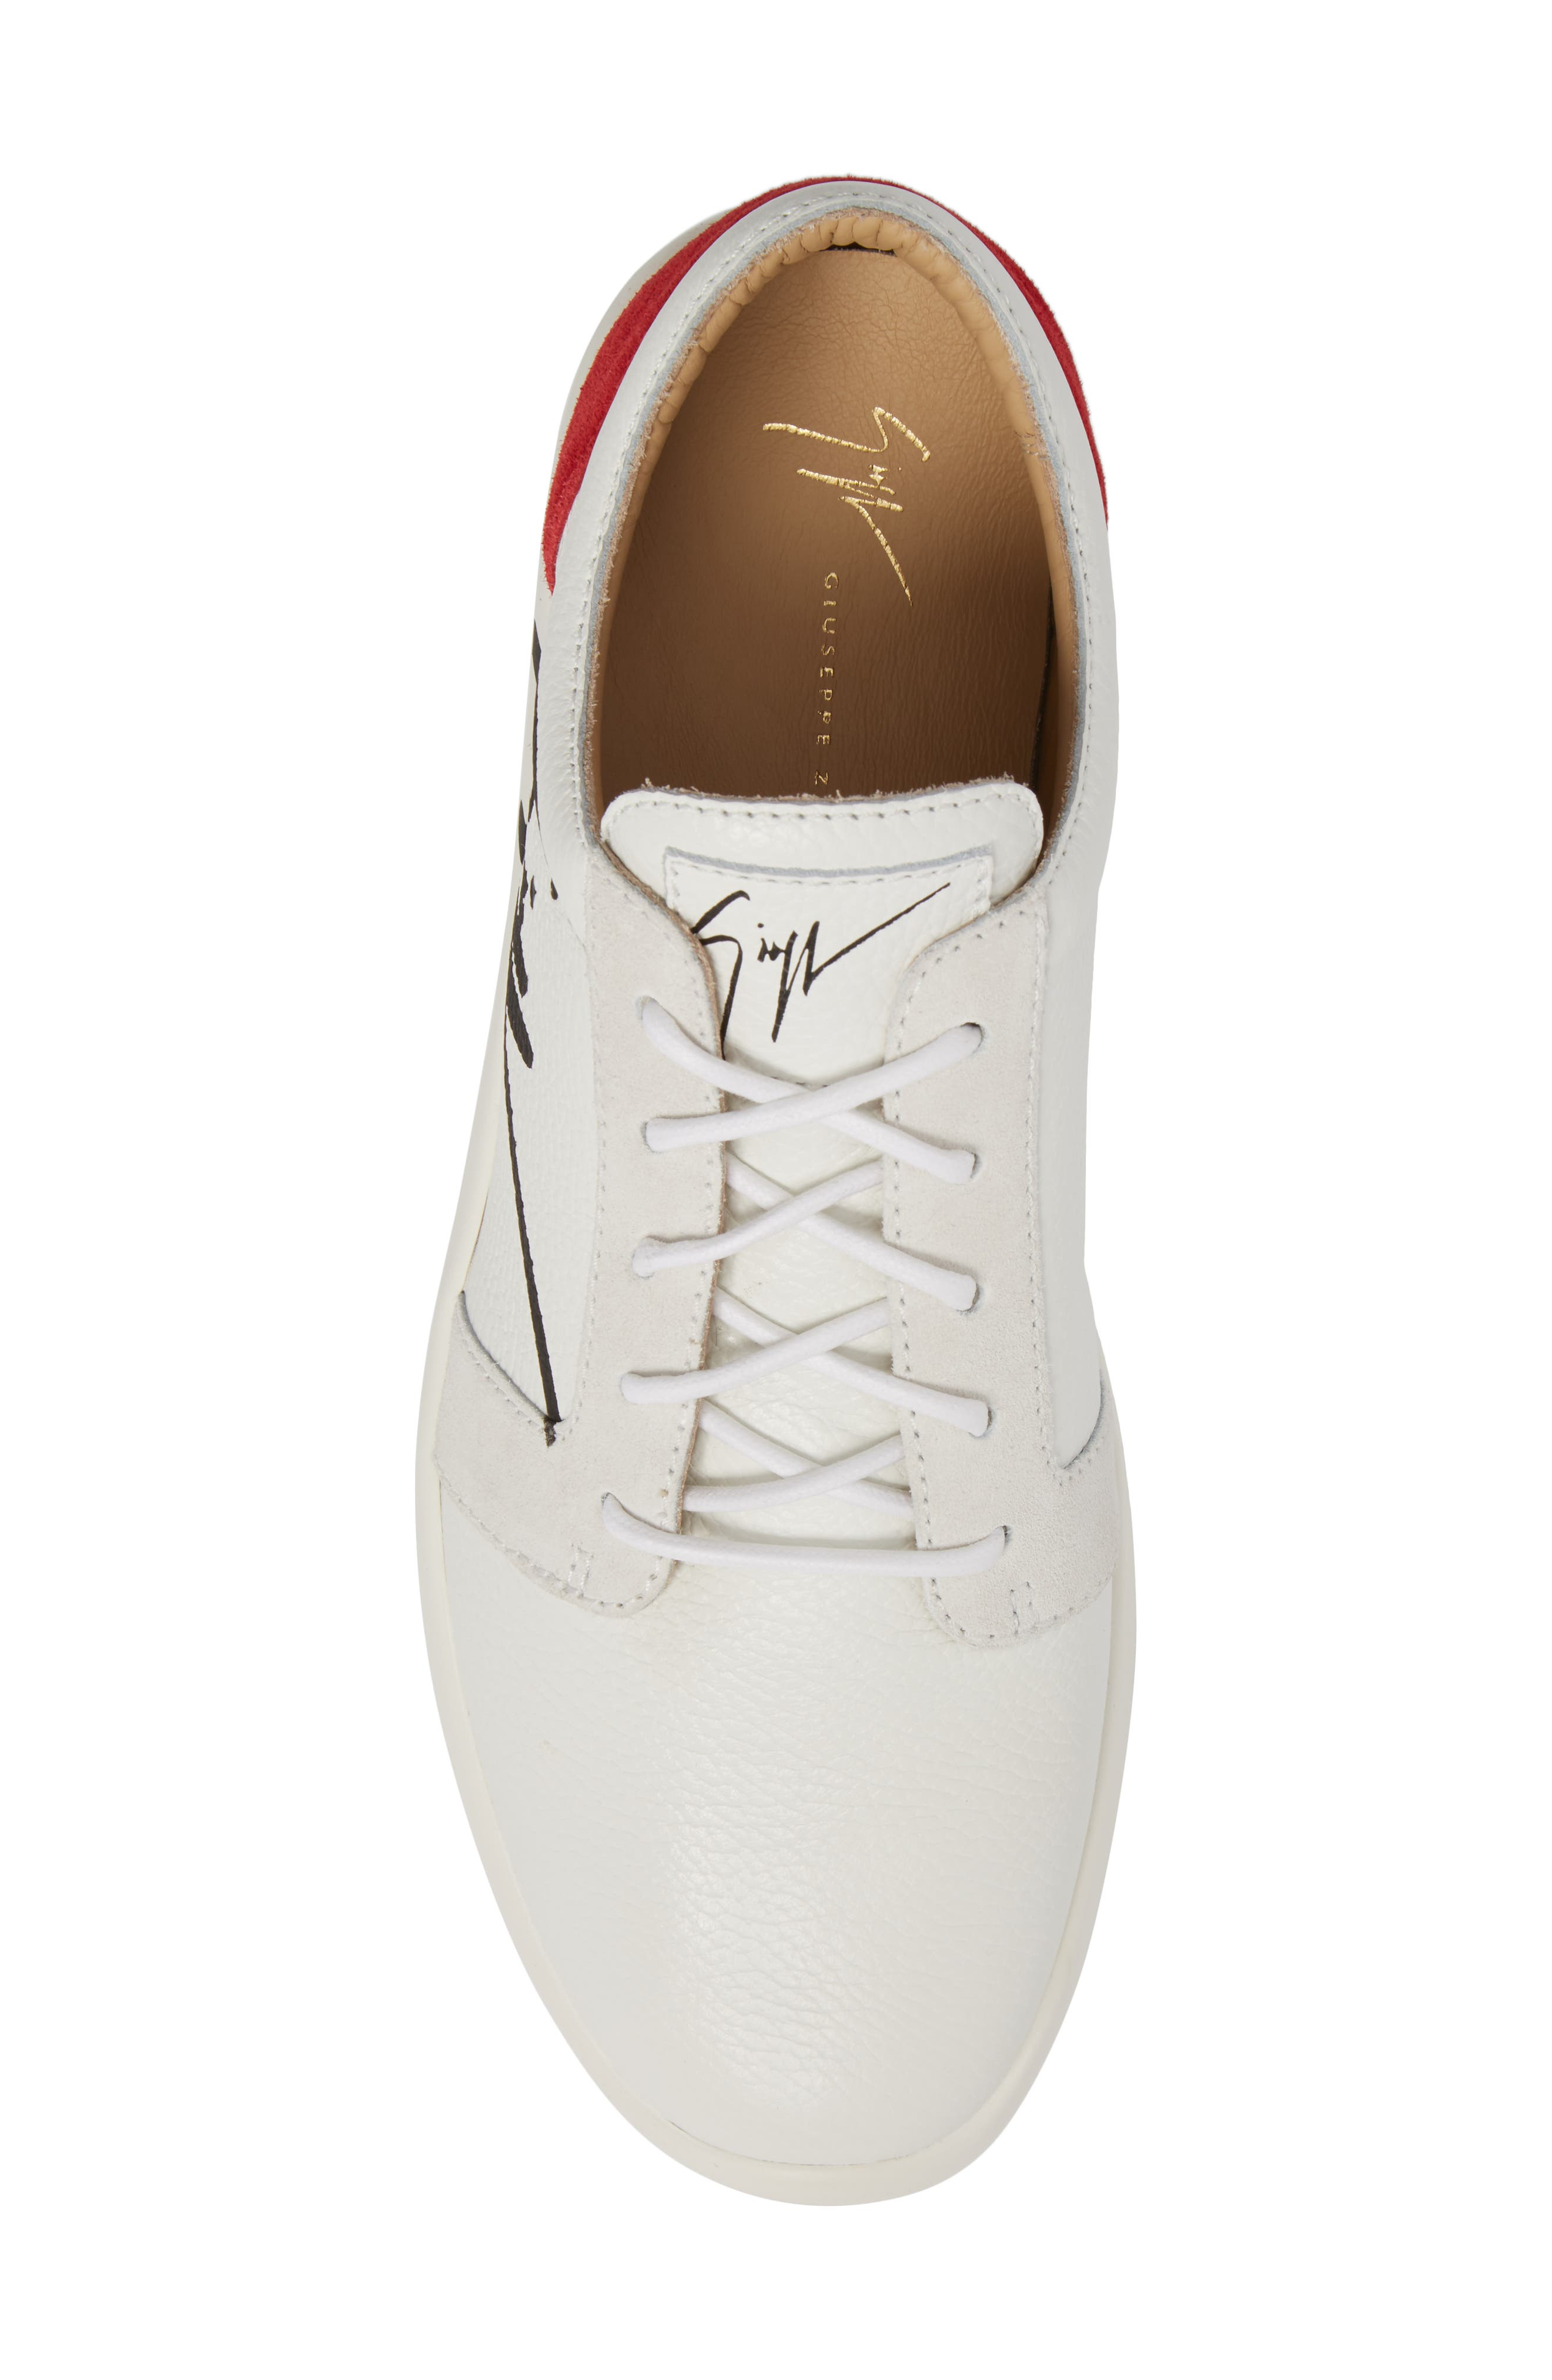 Signature Sneaker,                             Alternate thumbnail 5, color,                             White W/ Red Counter